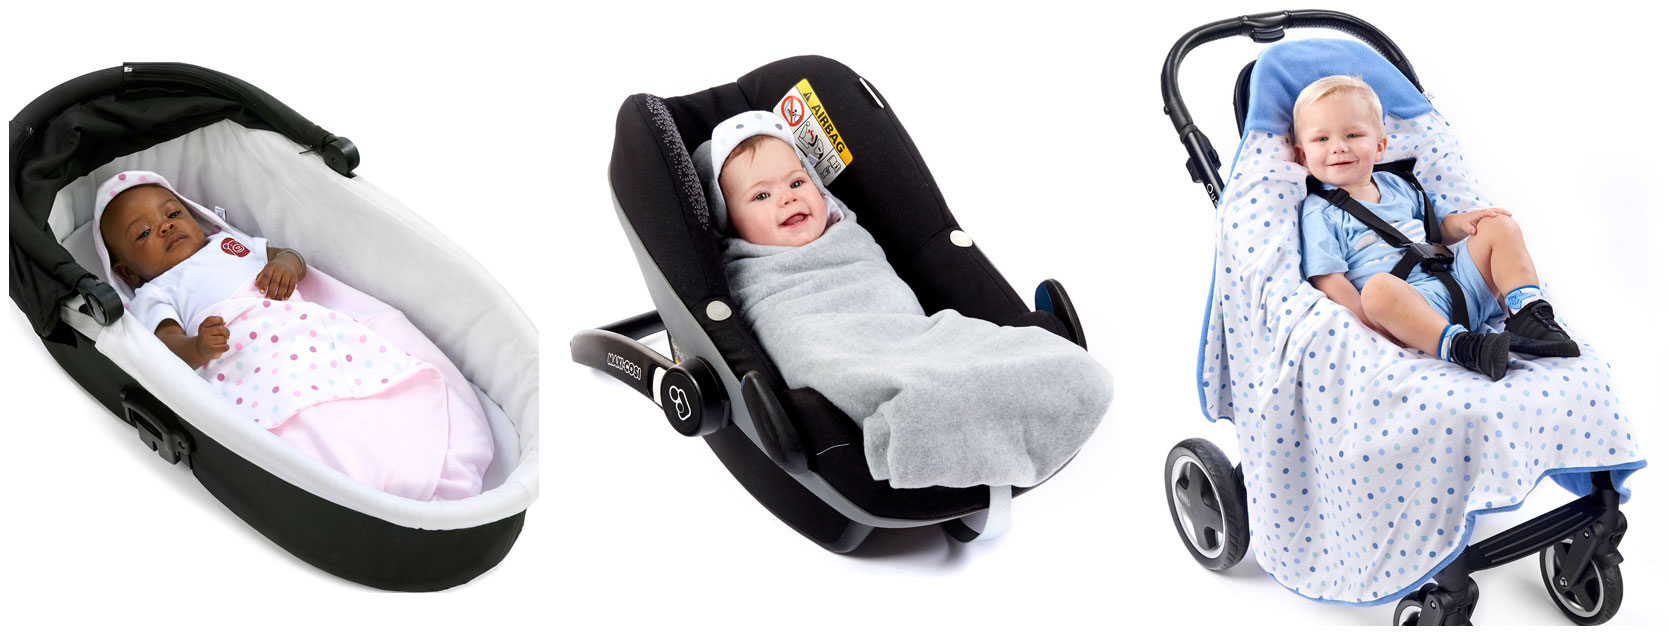 babies and toddler in morrck car seat blankets in carry cot car seat and buggy